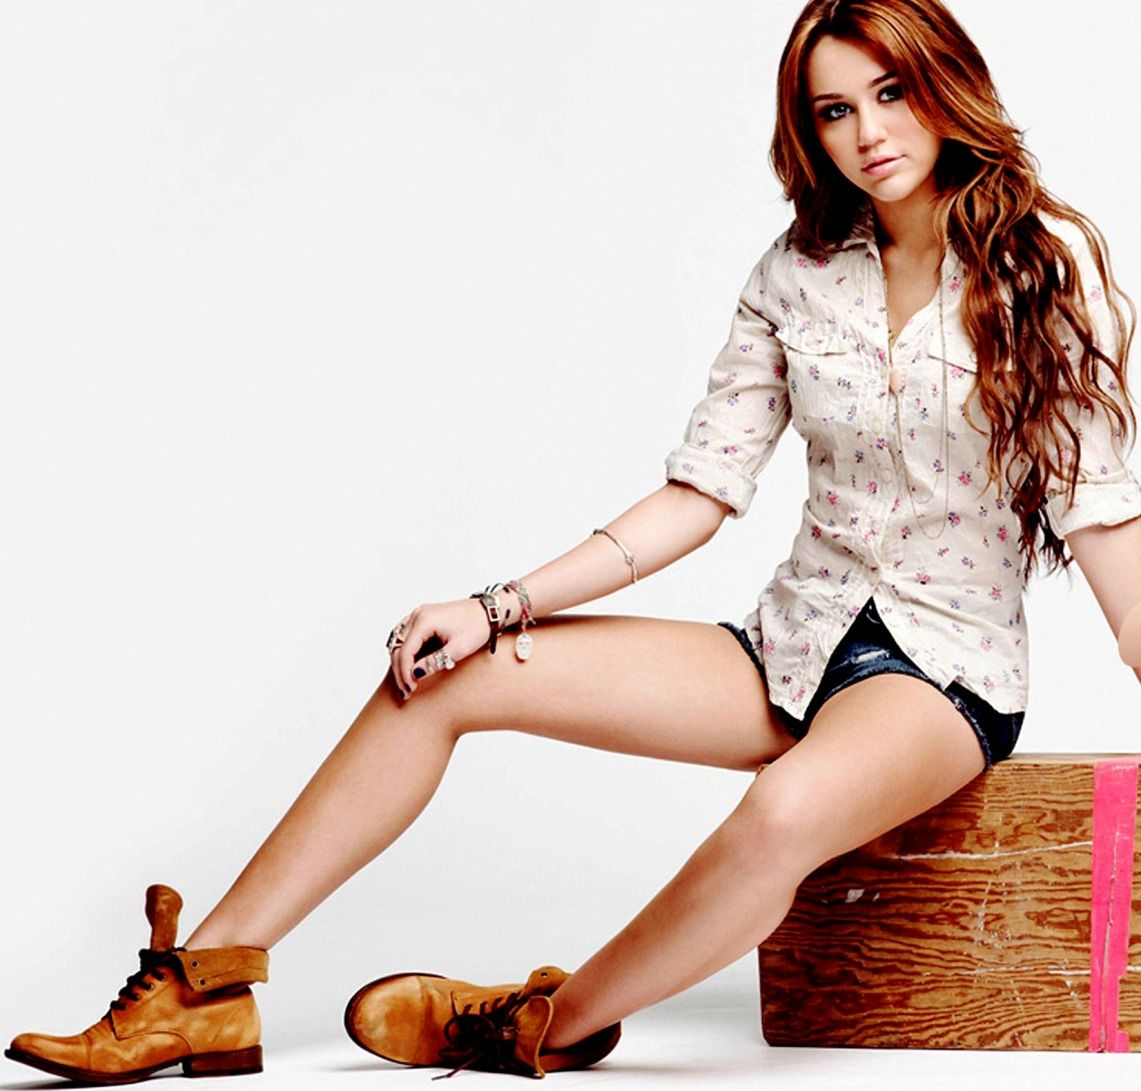 All About HD Wallpapers: Miley Cyrus New HD Wallpapers 2013